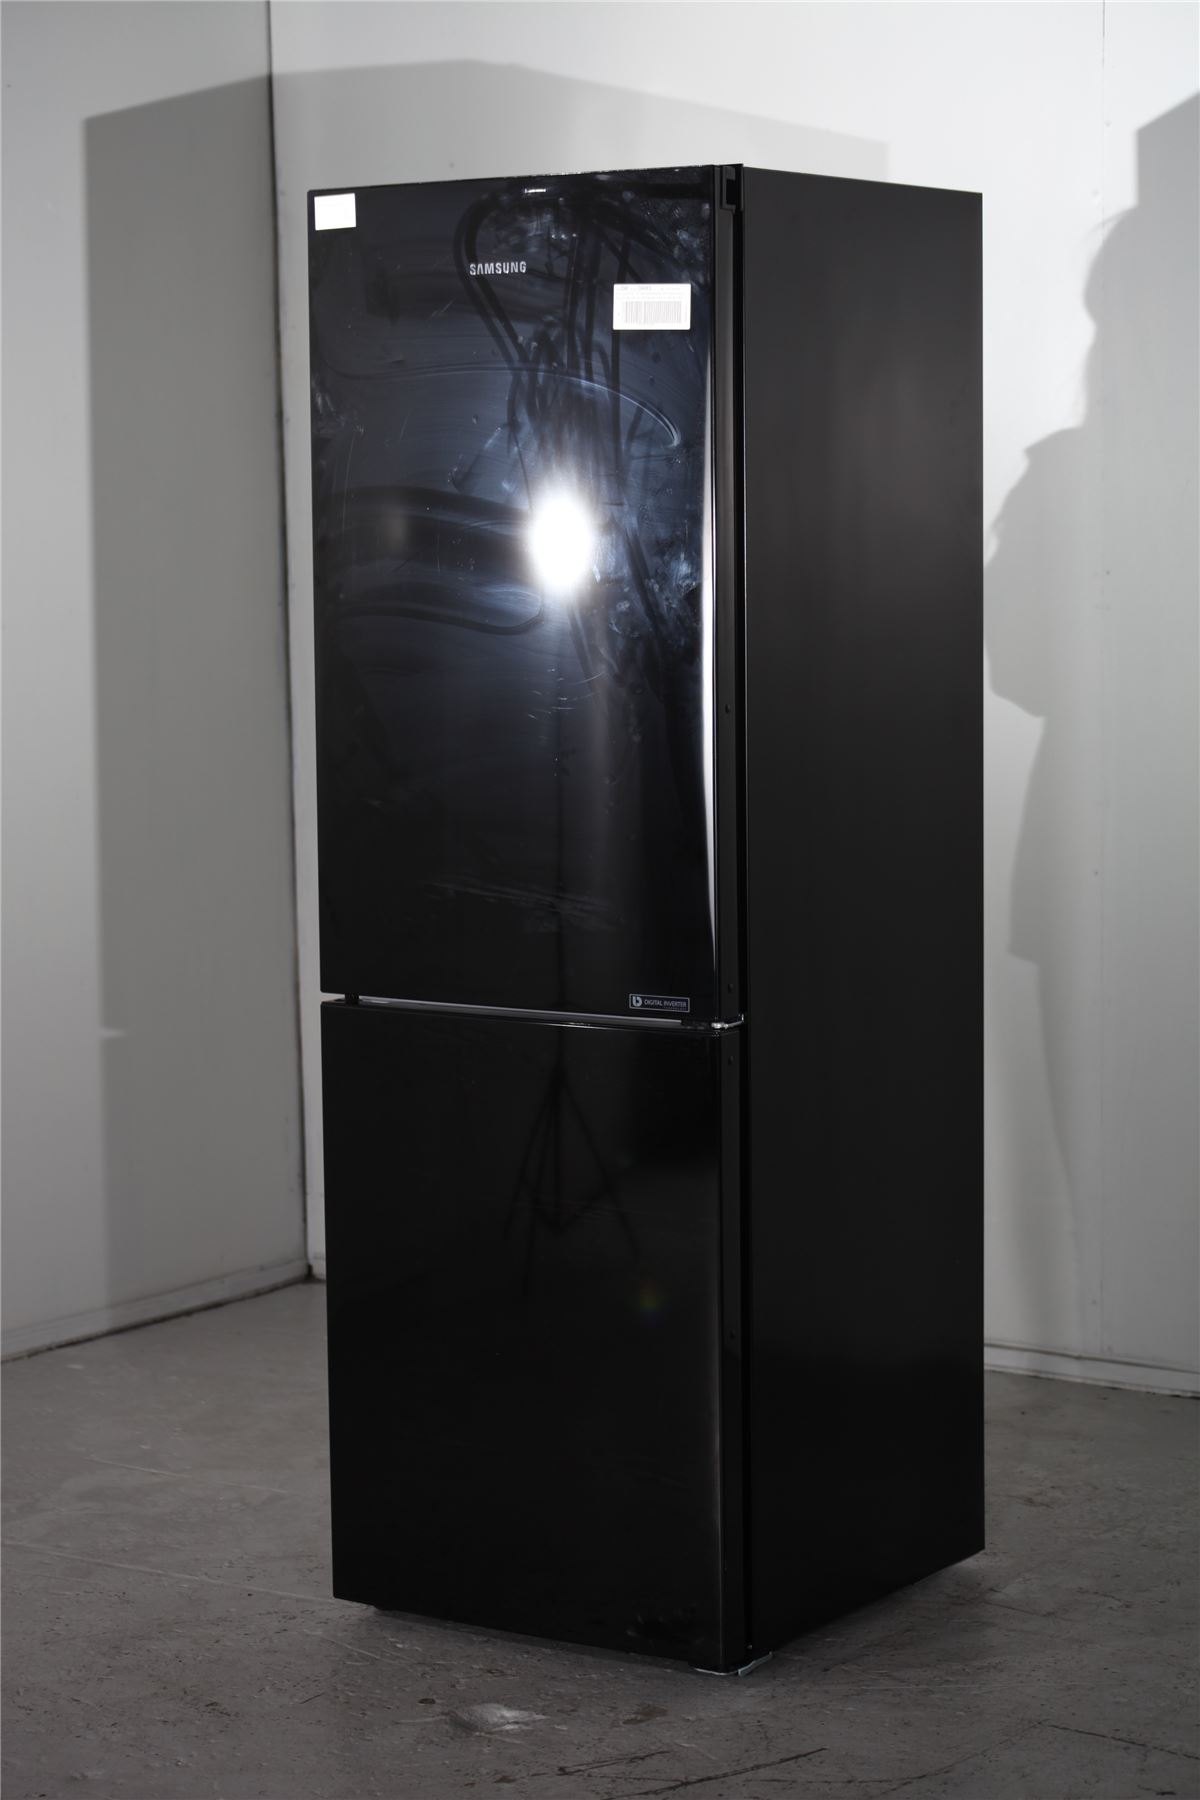 preloved samsung fridge freezer rb29fwjndsa black for sale in edmonton london. Black Bedroom Furniture Sets. Home Design Ideas